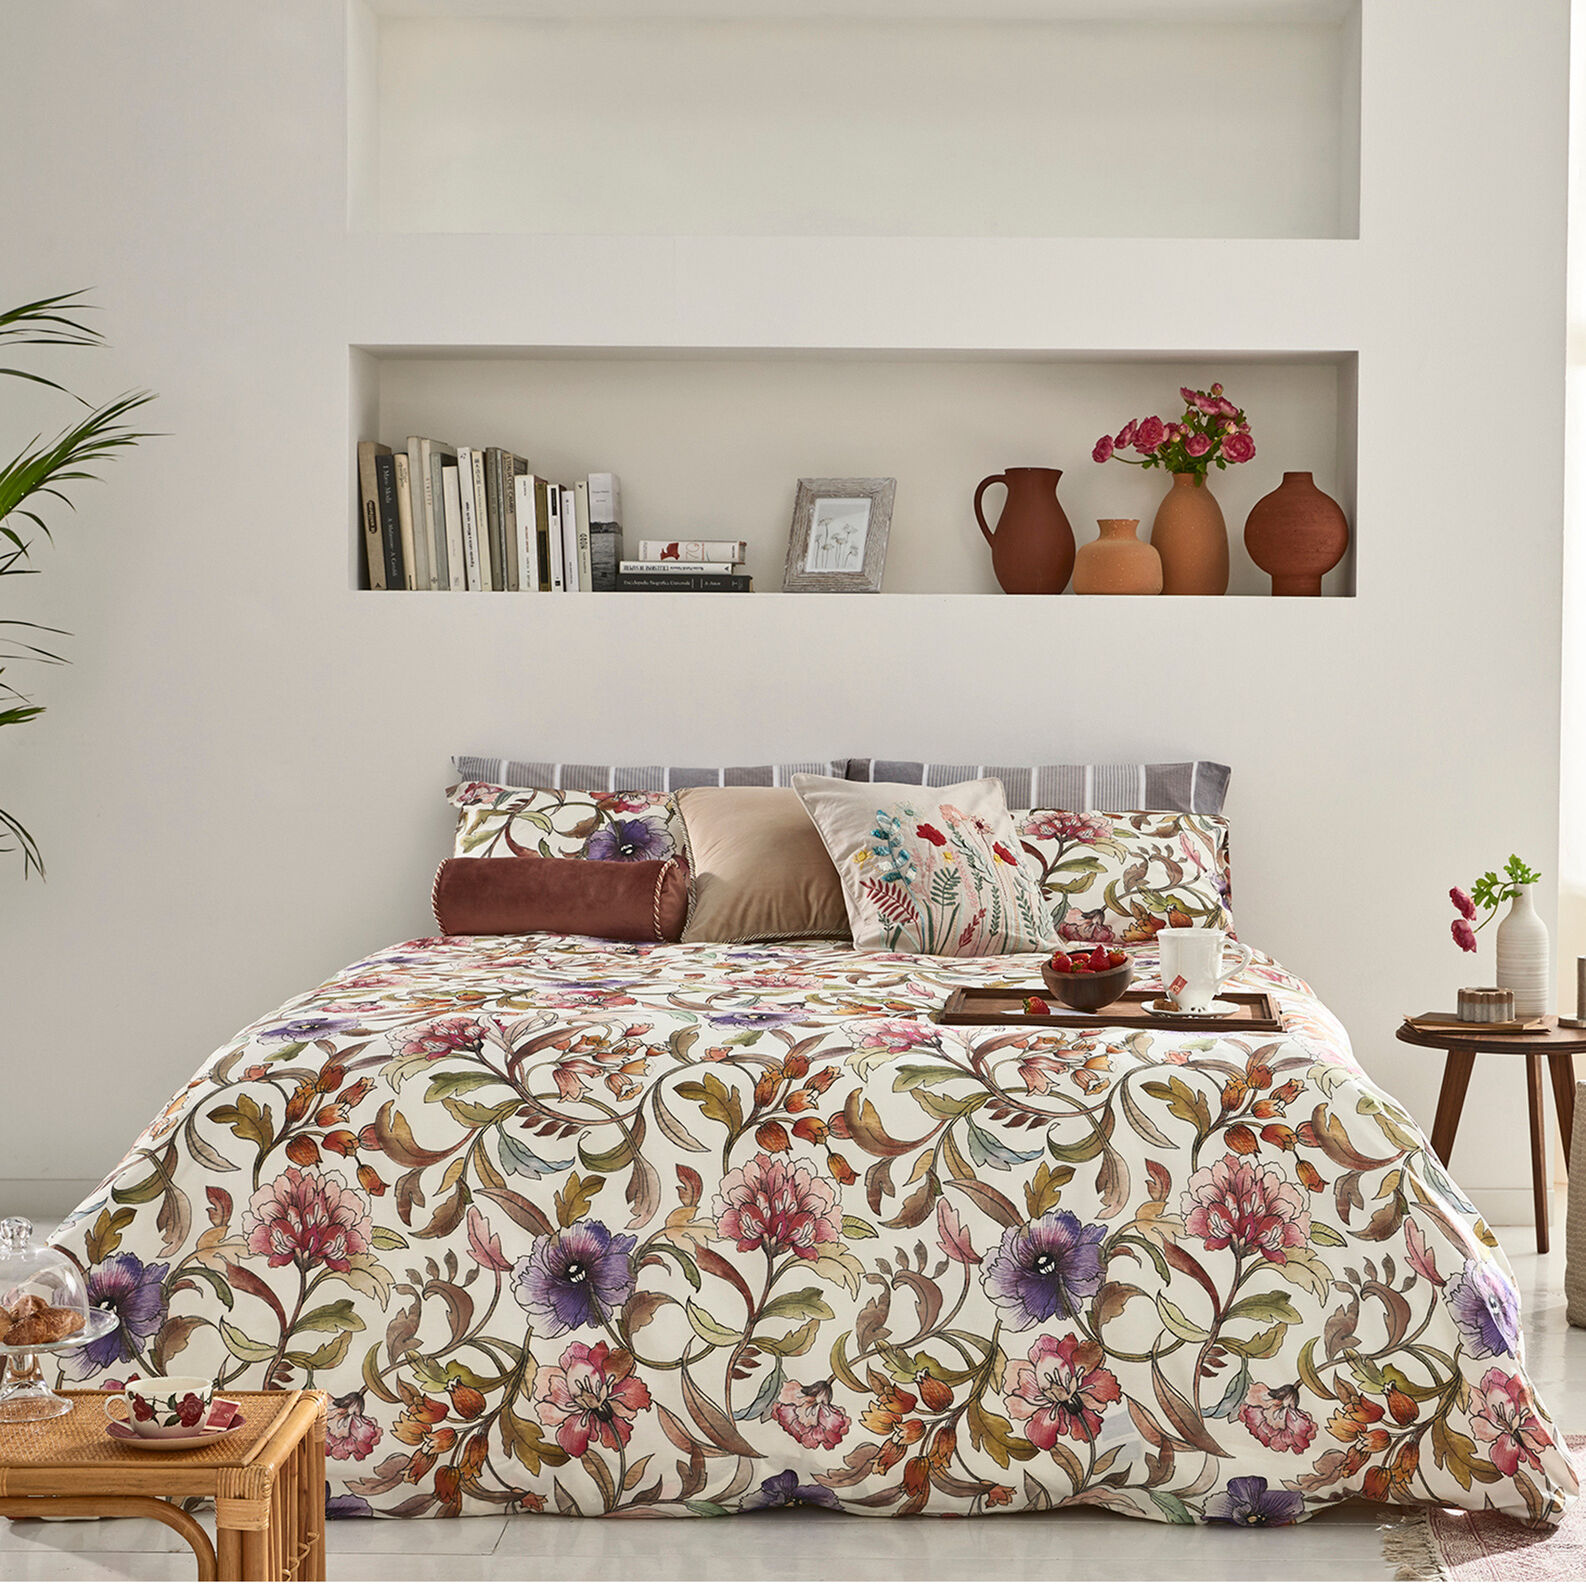 Cotton percale duvet cover set with floral pattern